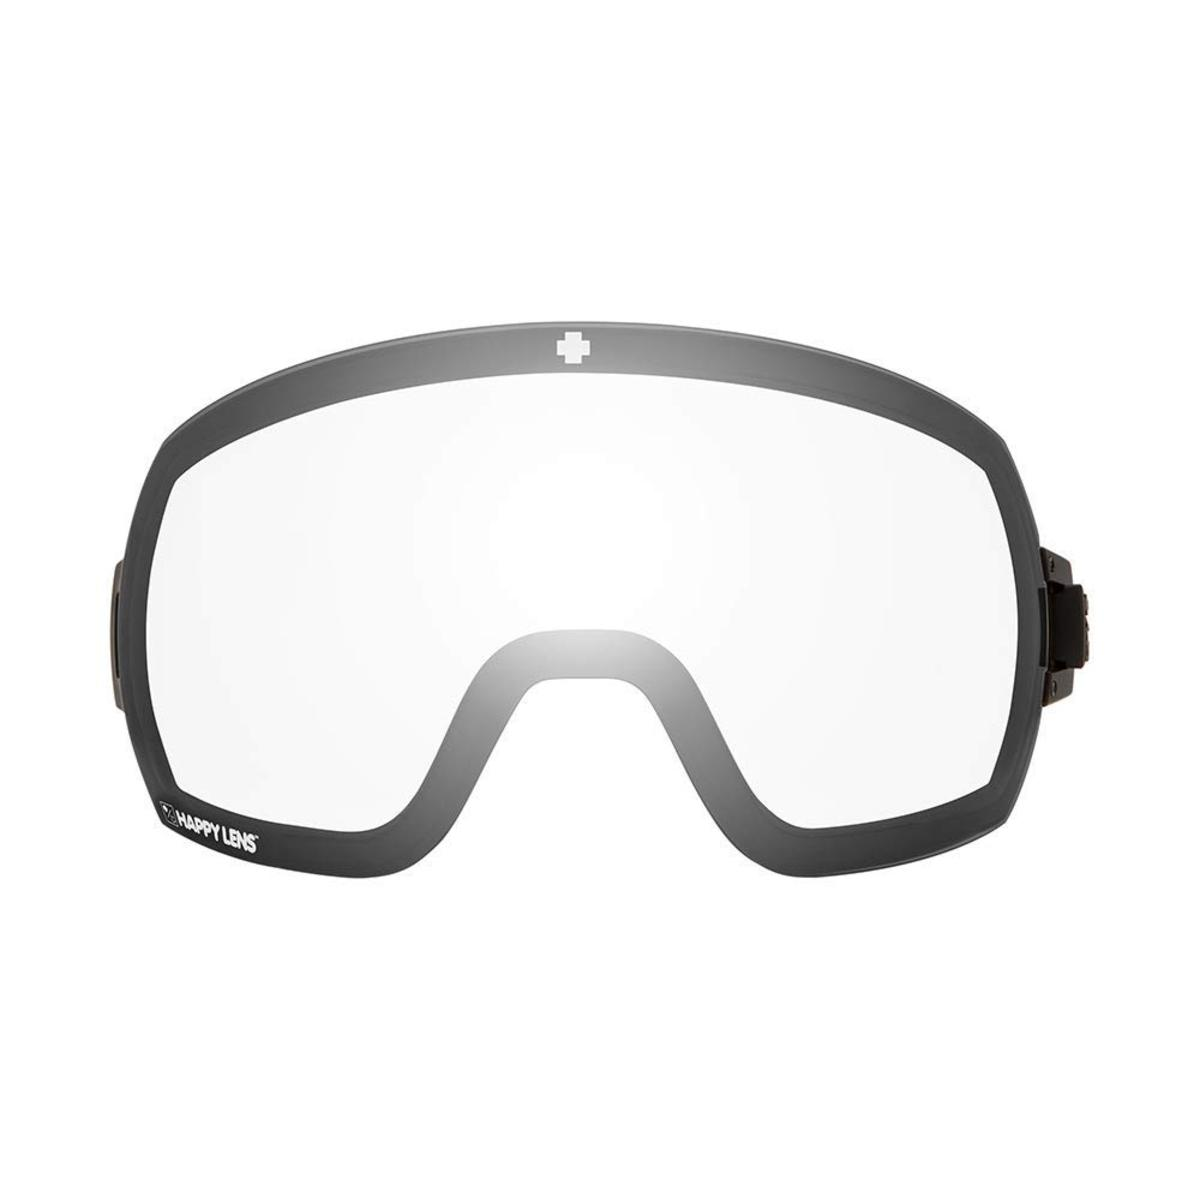 Spy Legacy Goggle Replacement Lens